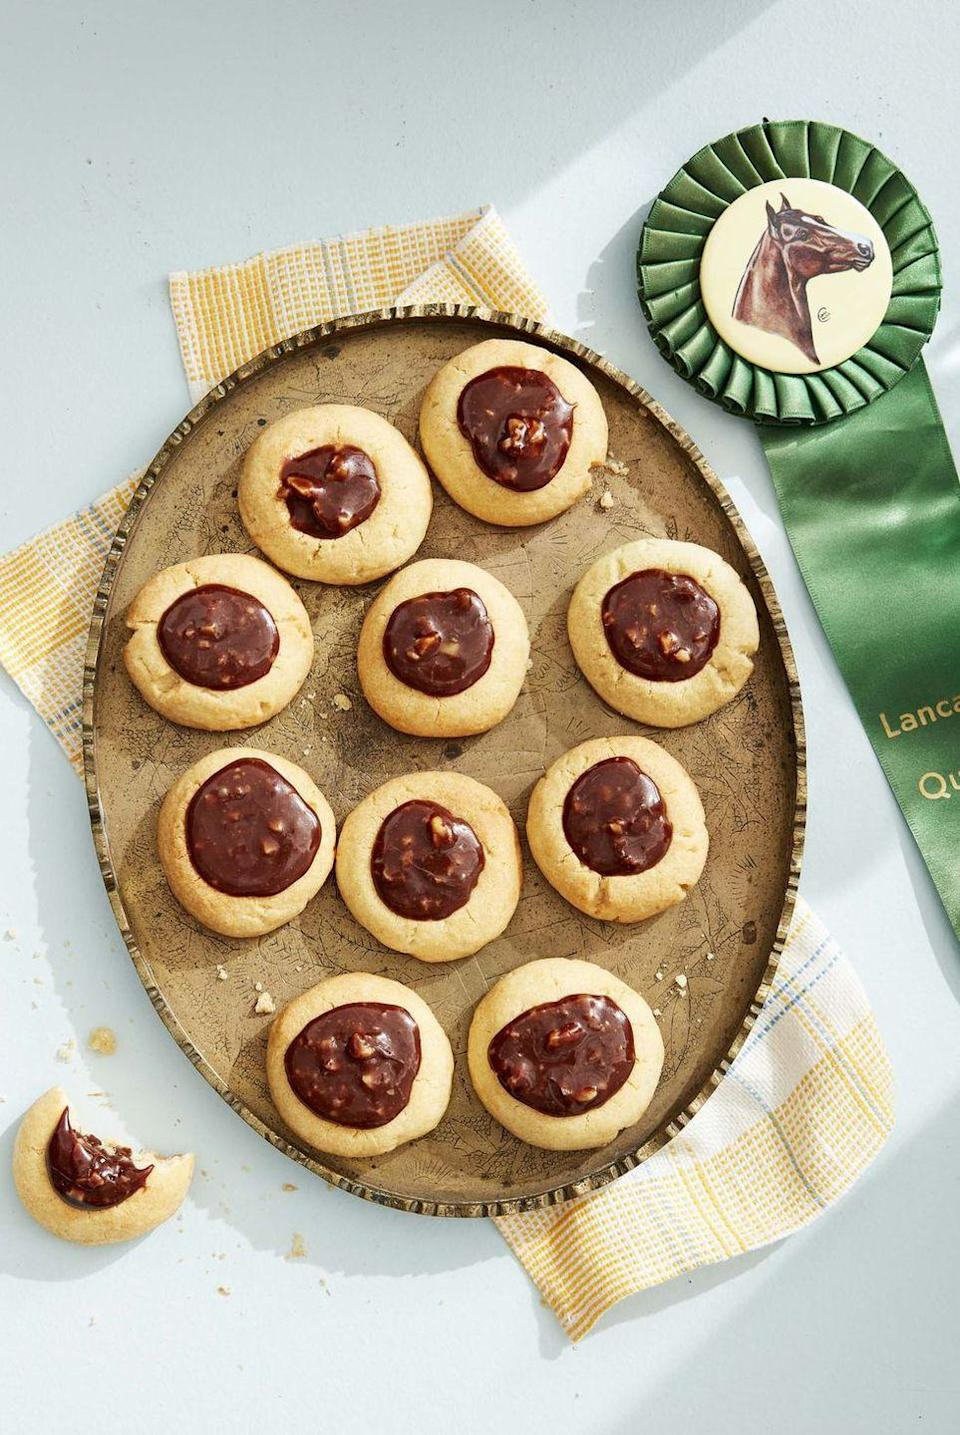 """<p>These easy homemade caramel cookies have a secret ingredient: A few tablespoons of bourbon adds a hint of spice and depth of flavor.</p><p><em><a href=""""https://www.countryliving.com/food-drinks/a32042556/caramel-chocolate-walnut-thumbprint-cookies/"""" rel=""""nofollow noopener"""" target=""""_blank"""" data-ylk=""""slk:Get the recipe from Country Living »"""" class=""""link rapid-noclick-resp"""">Get the recipe from Country Living »</a></em></p>"""